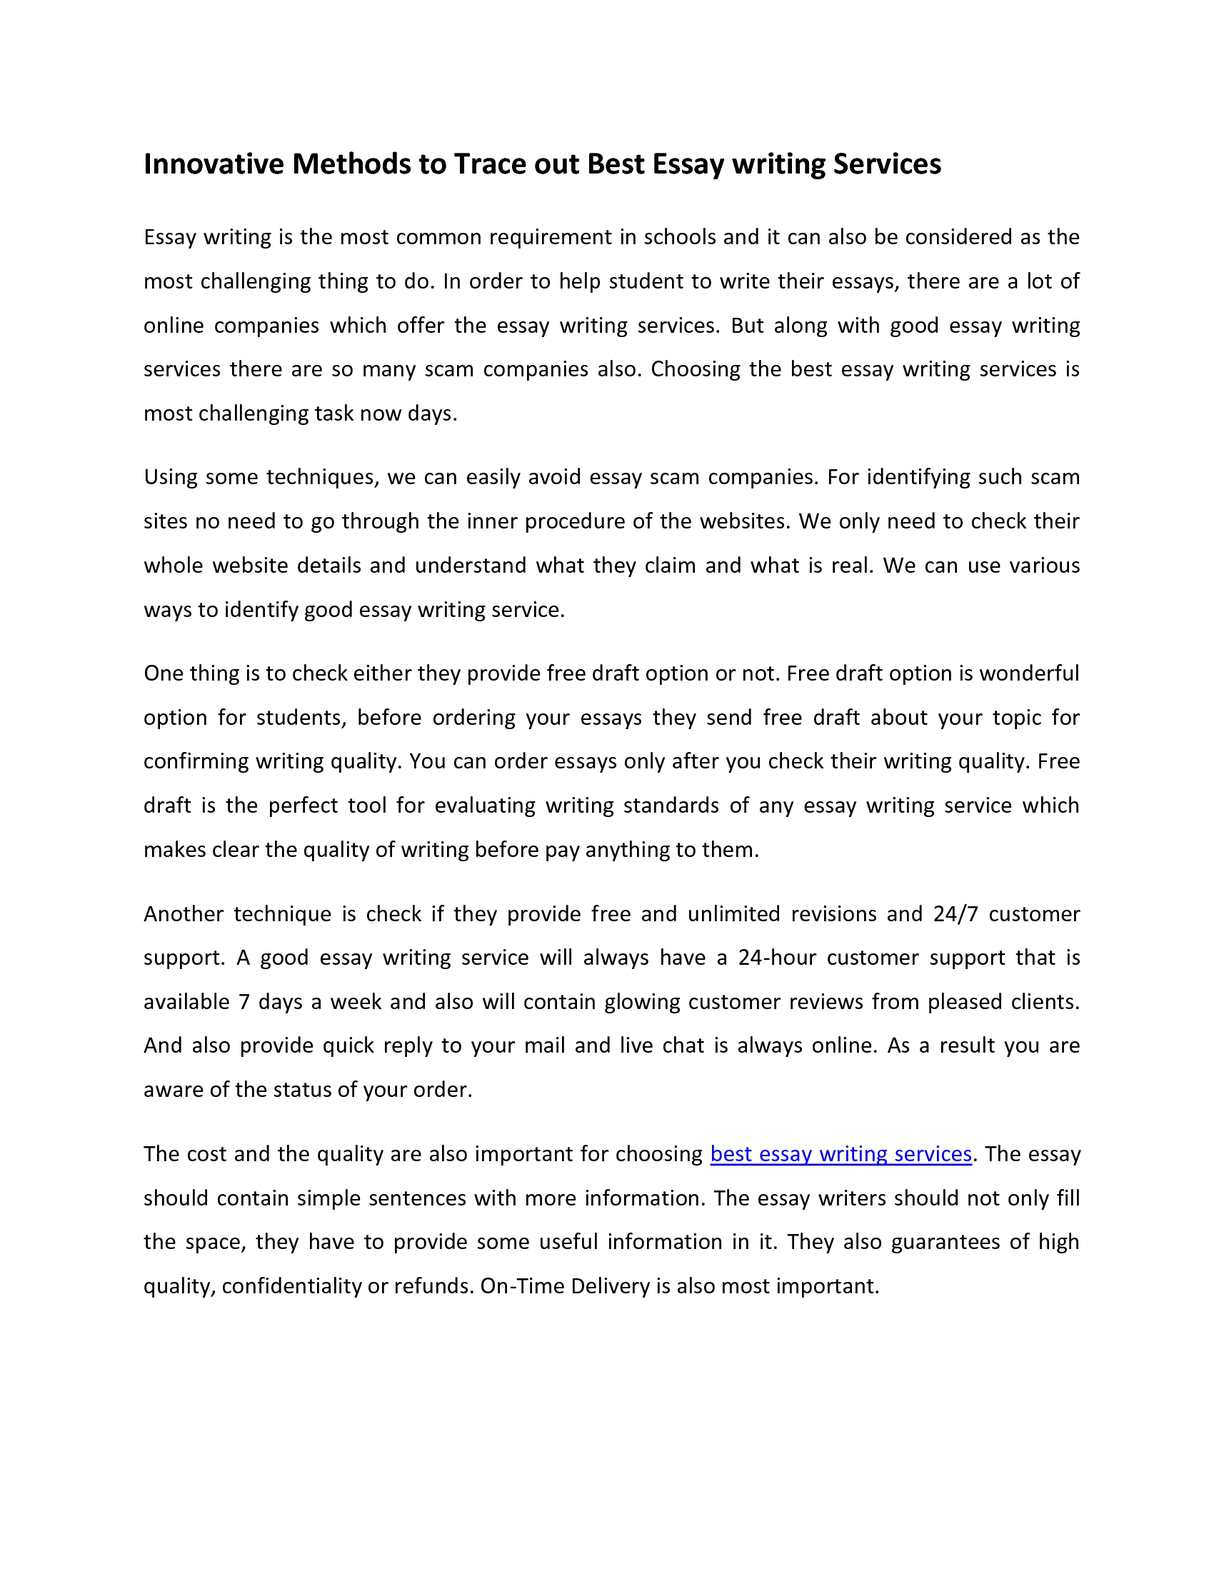 Essay Thesis Statement Example  Help Make A Business Plan also Help Research Calamo  Innovative Methods To Trace Out Best Essay Writing Services Where To Buy Business Plan Pro Premier